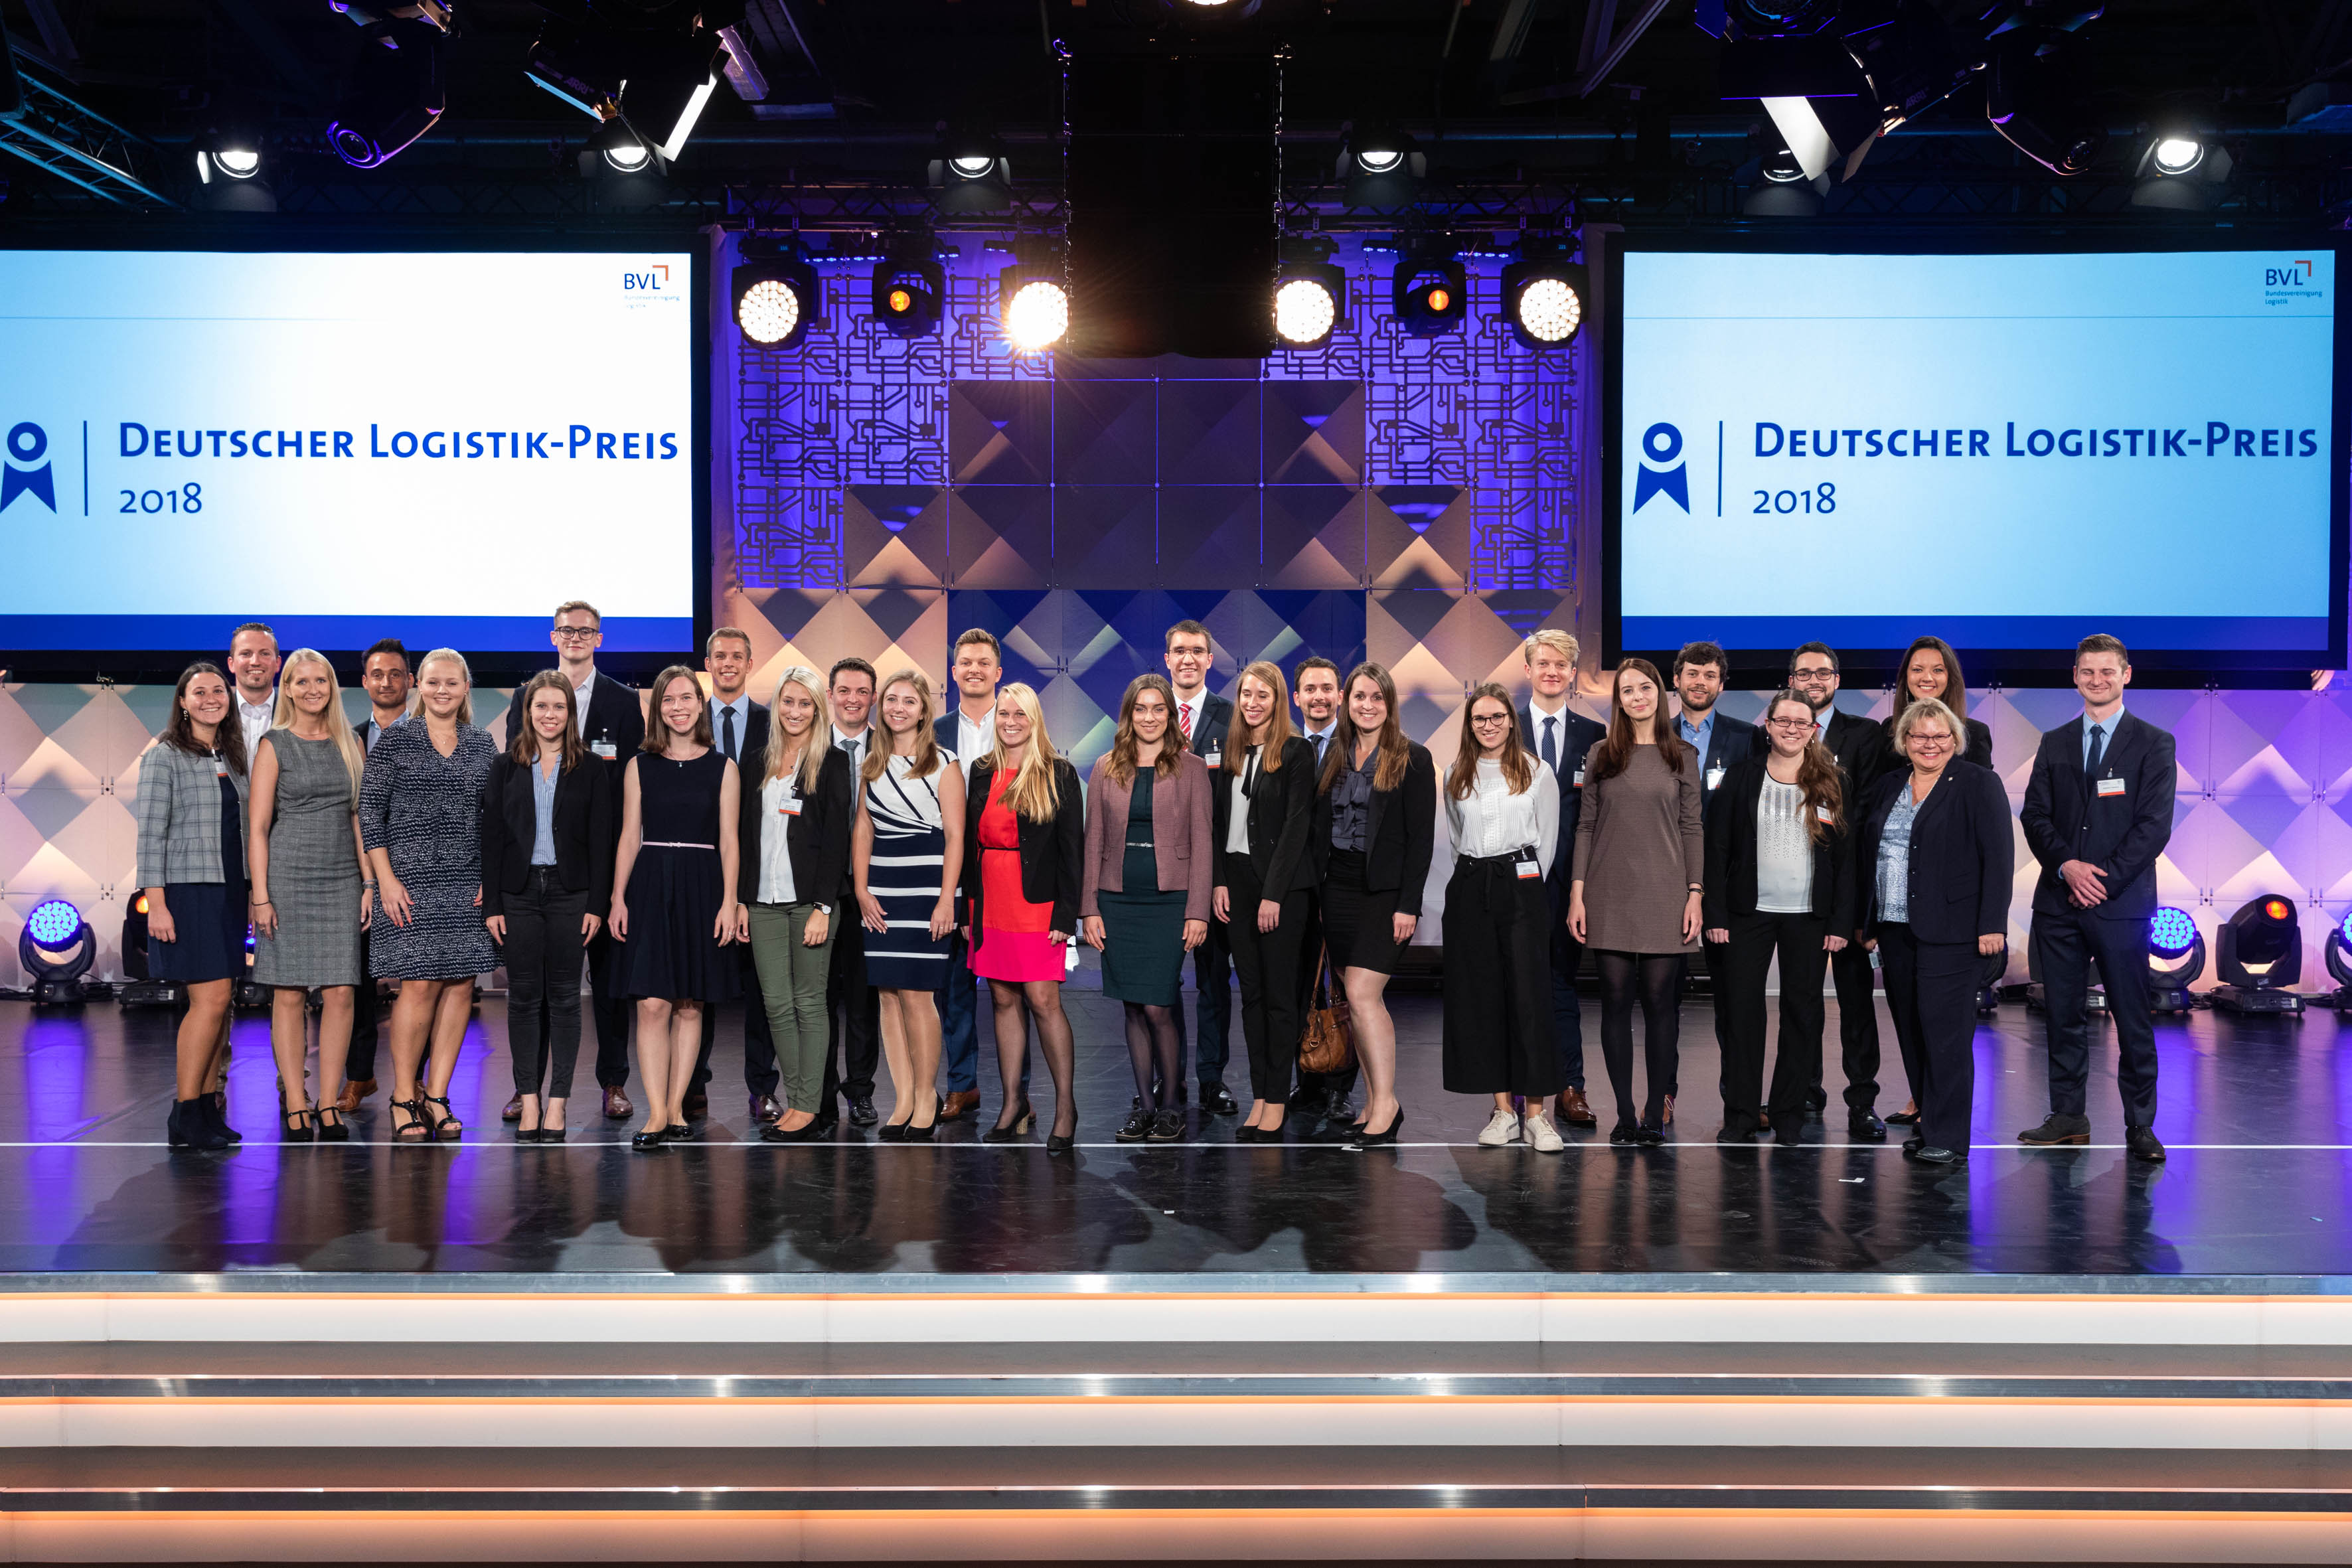 At the end of the Gala Evening in Berlin, the stage belonged to the young winners of the Thesis Award 2018.